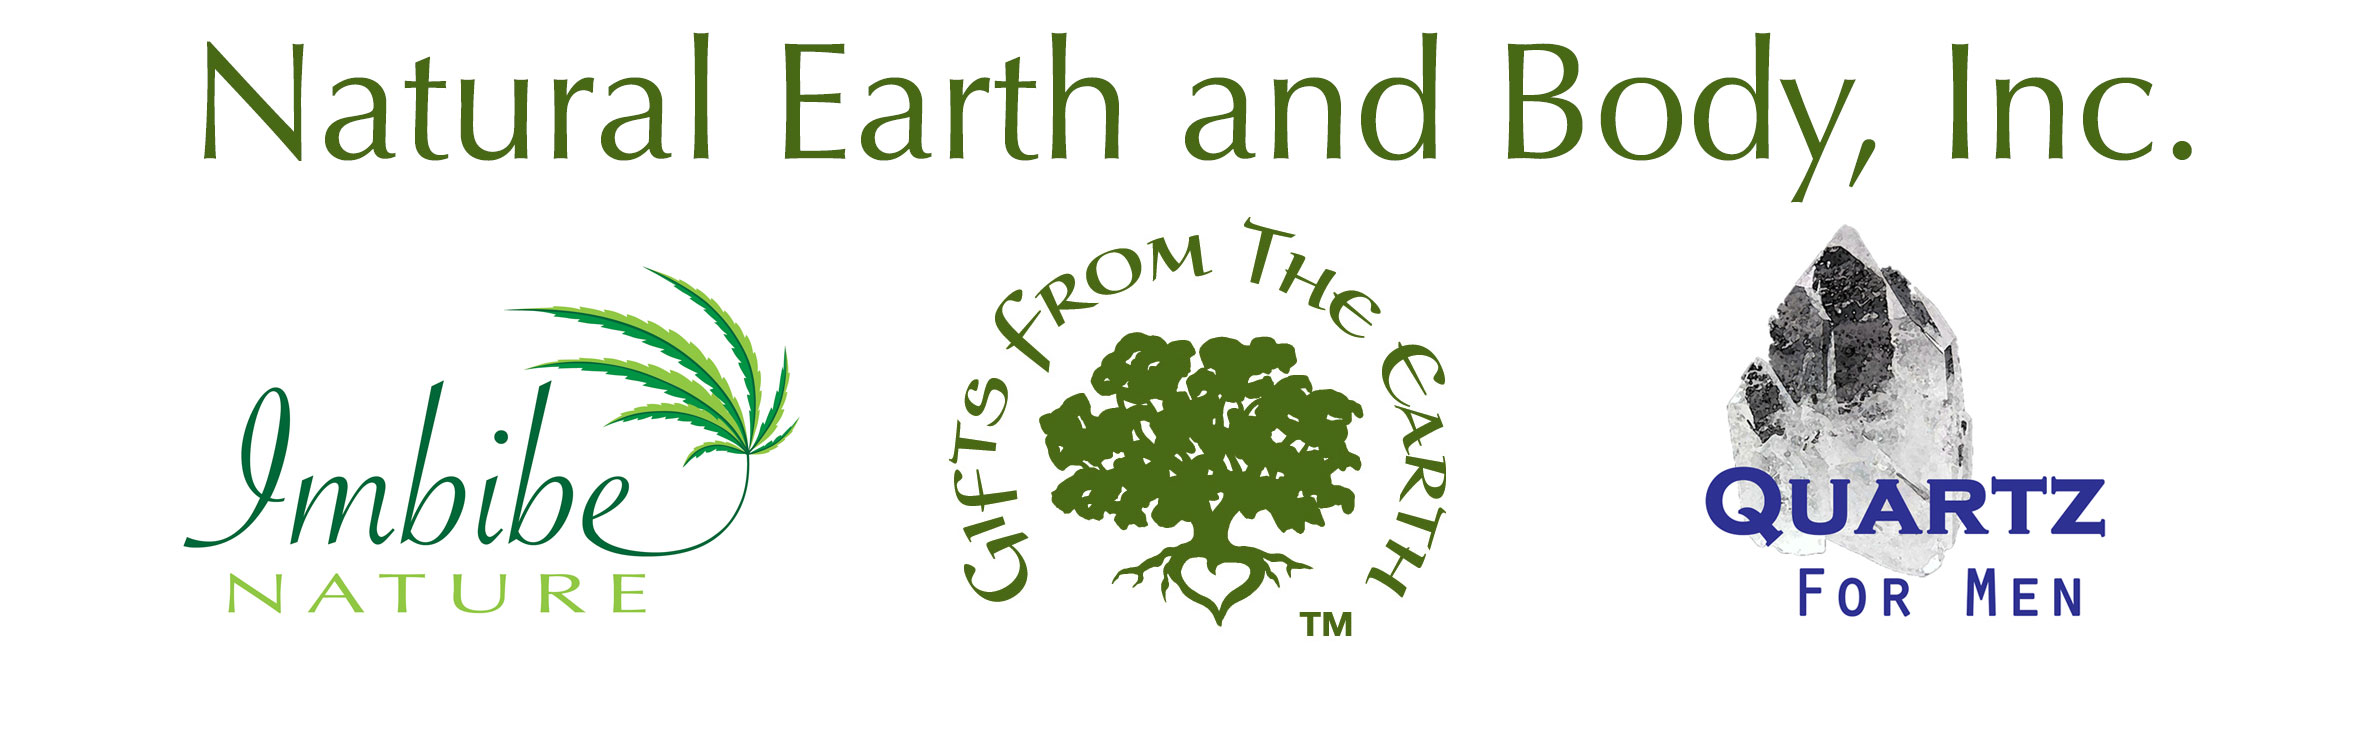 Gifts From the Earth